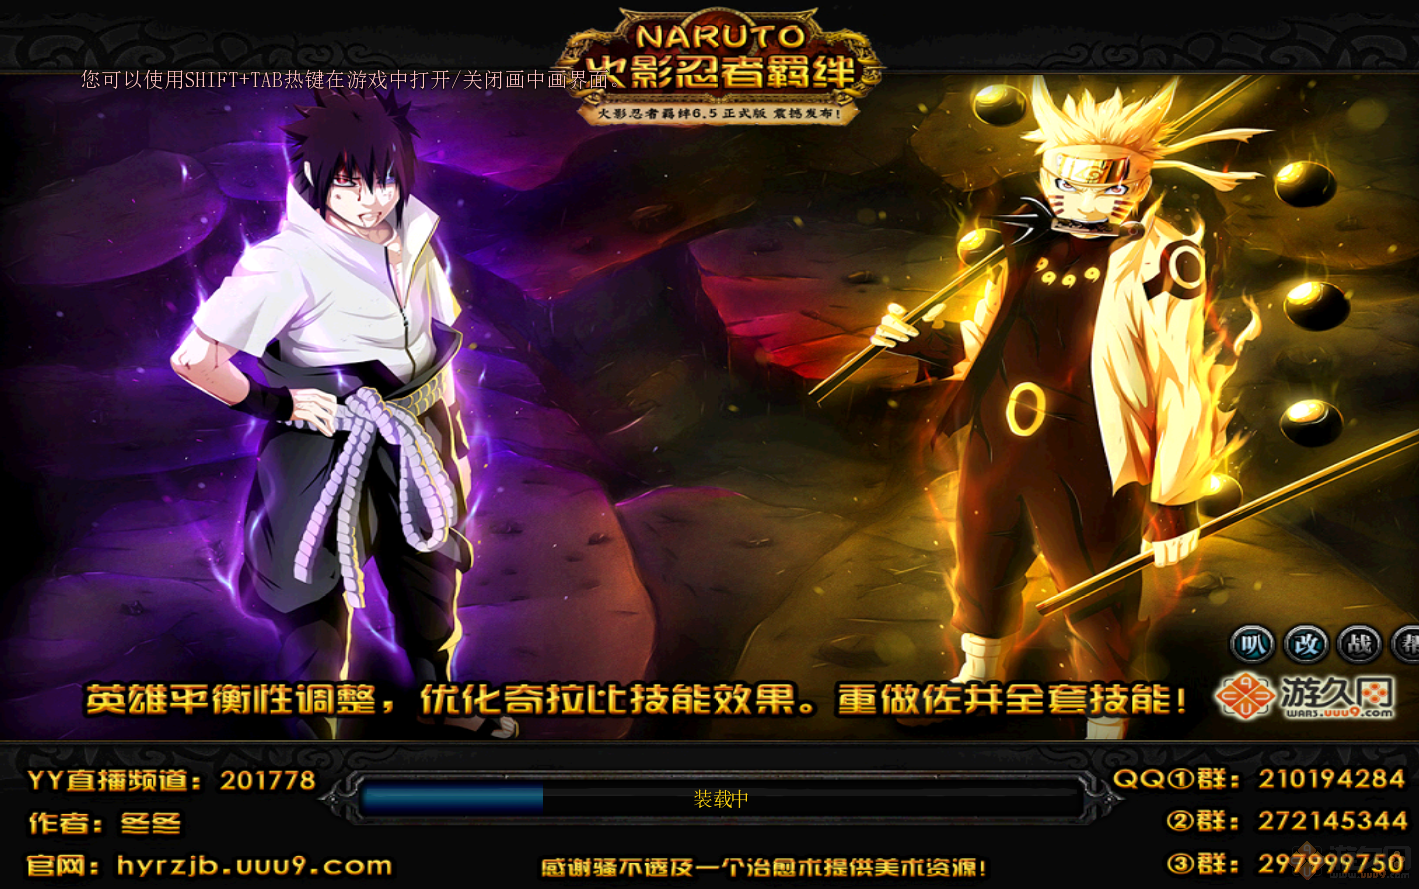 Naruto Castle Defense pre release versi 6.5 loading